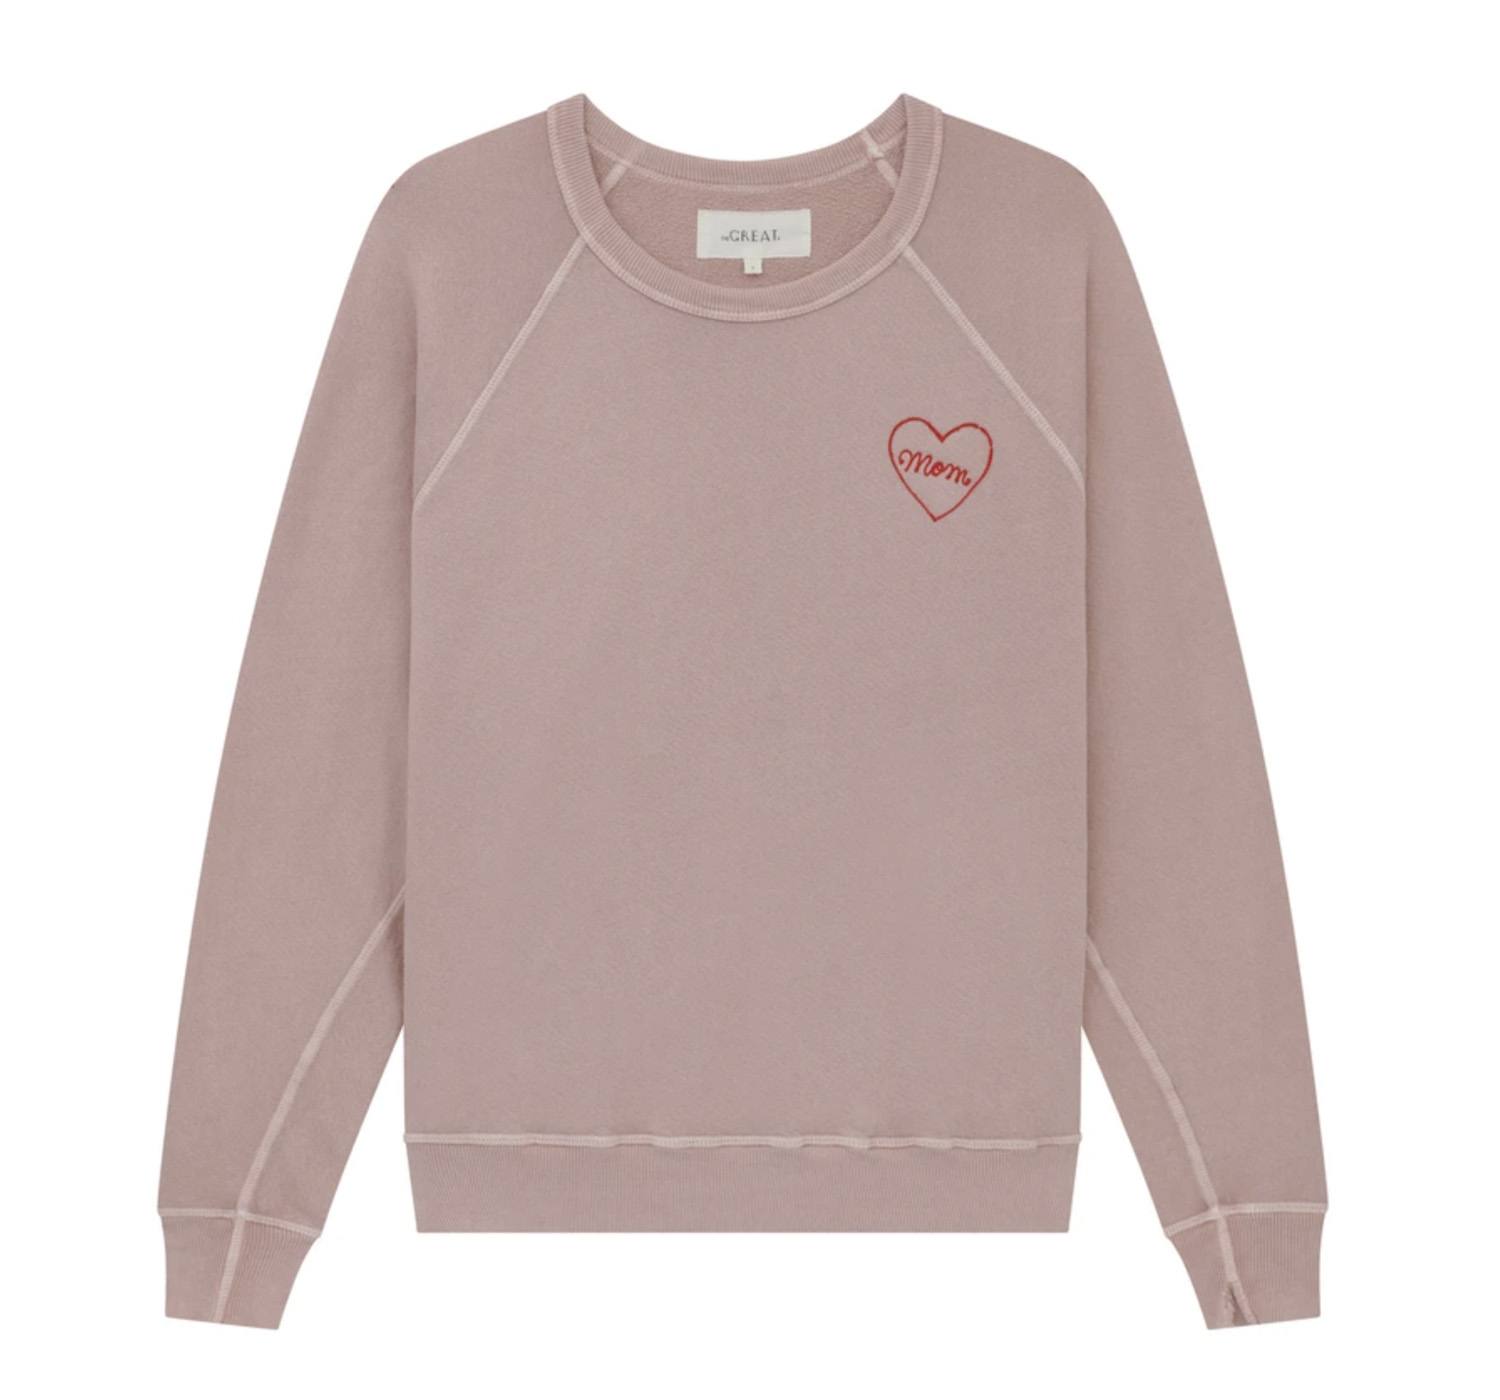 THE LIMITED EDITION MOM EMBROIDERED SWEATSHIRT